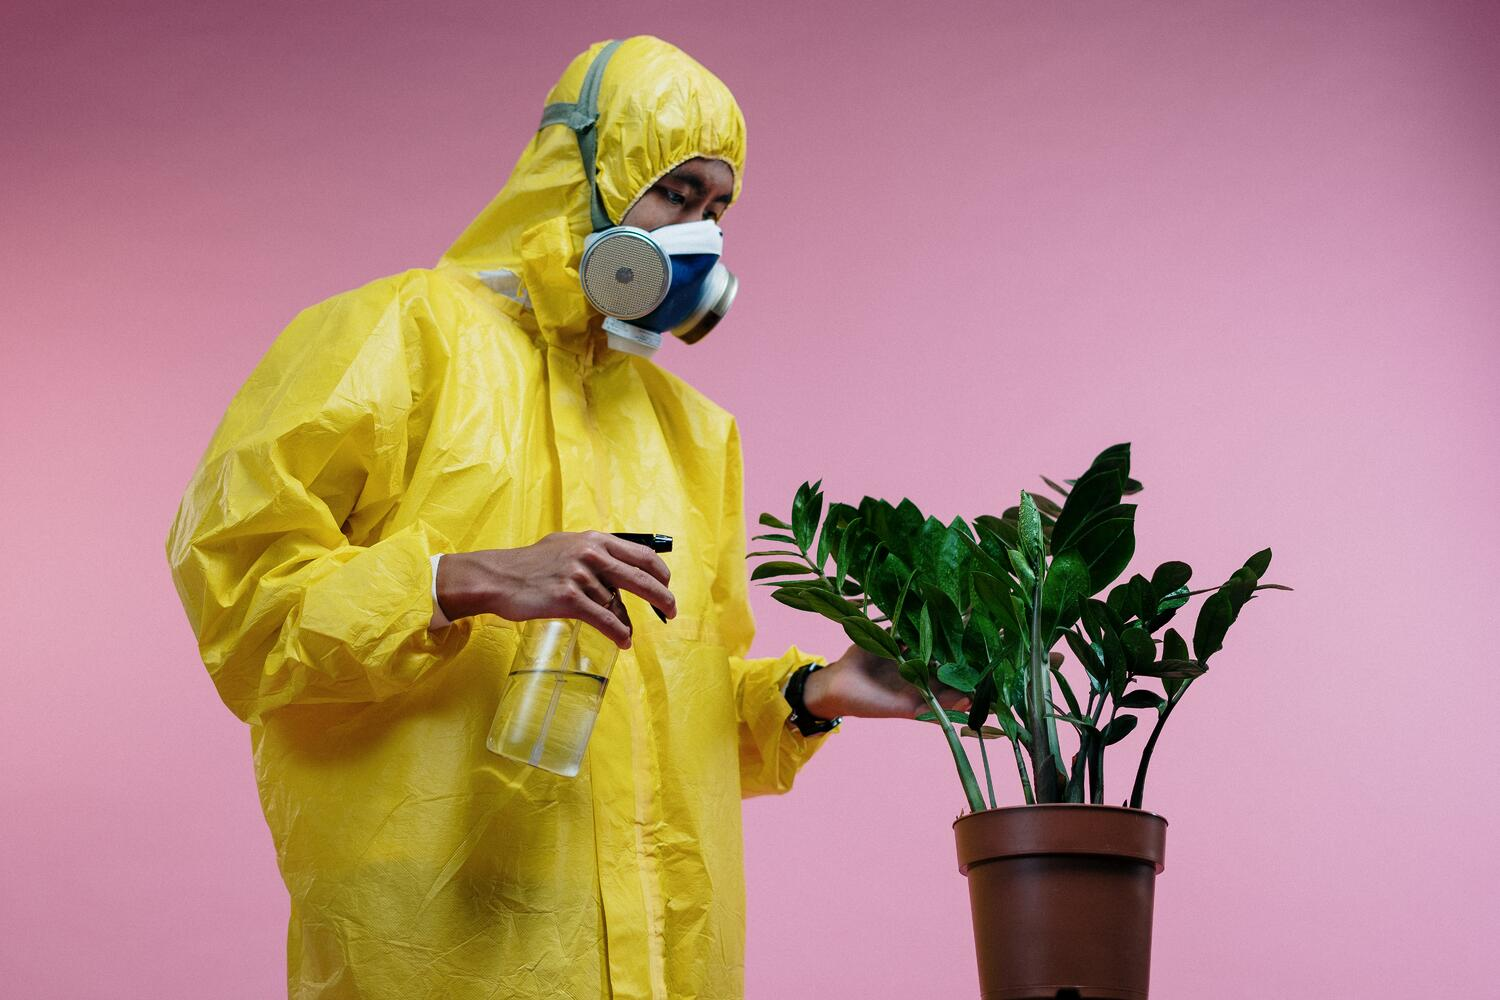 person-in-yellow-coveralls-spraying-plant-3951388